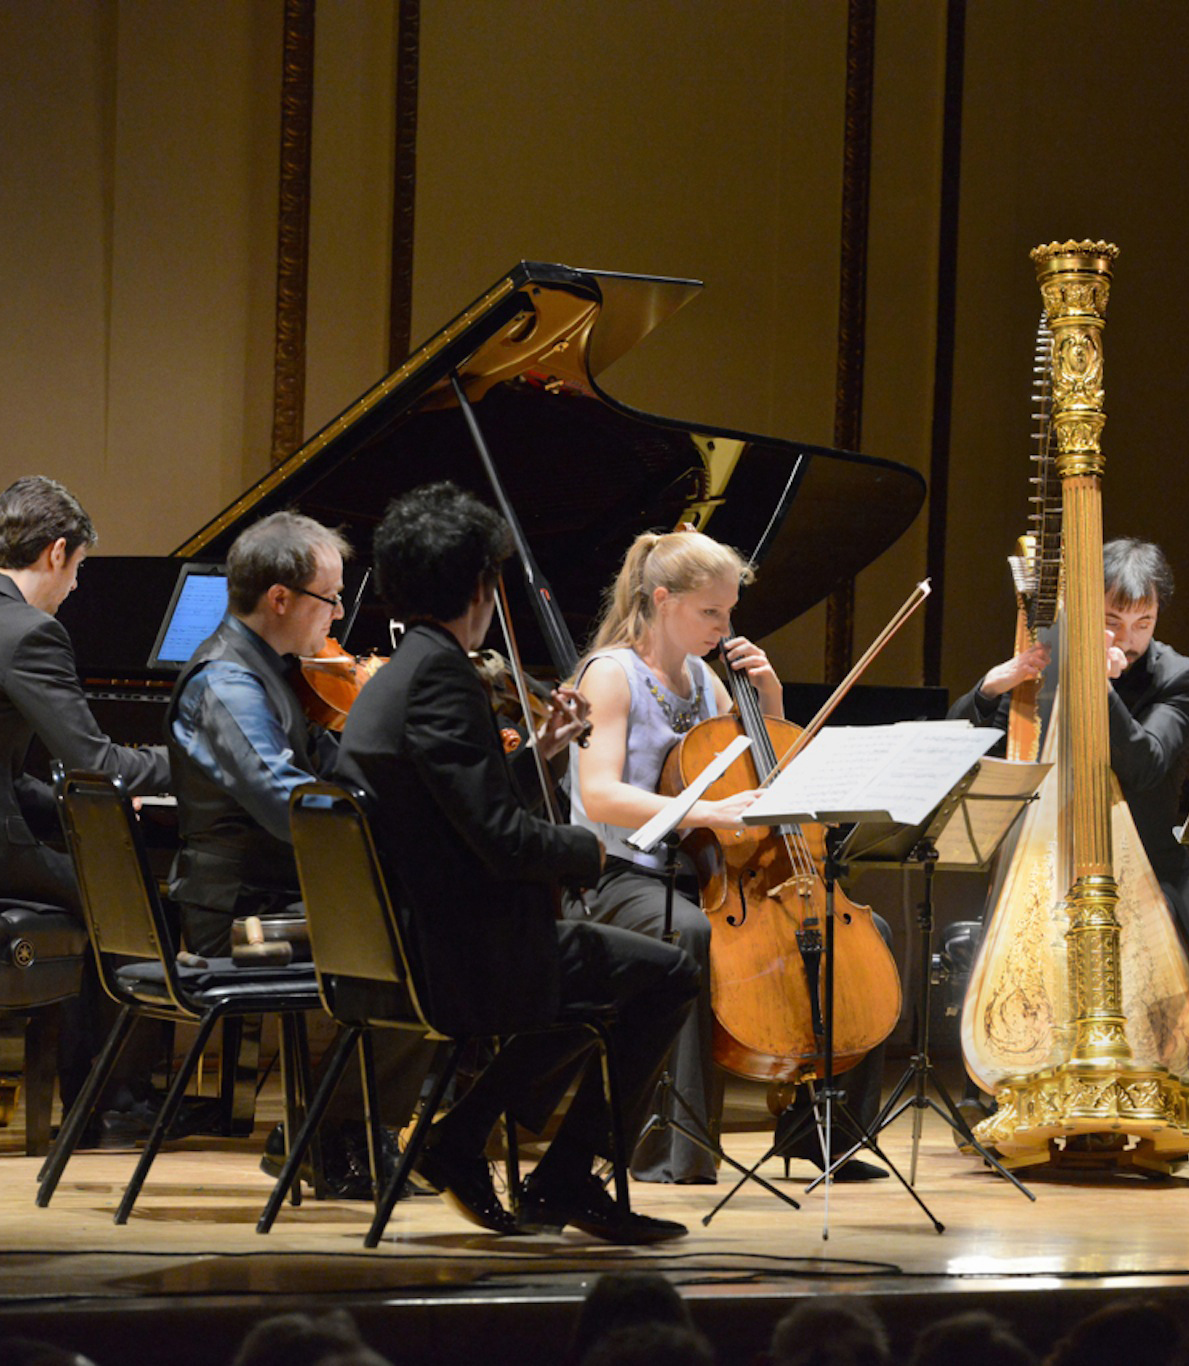 Israeli Chamber Project, musicians playing piano, violin, and harp